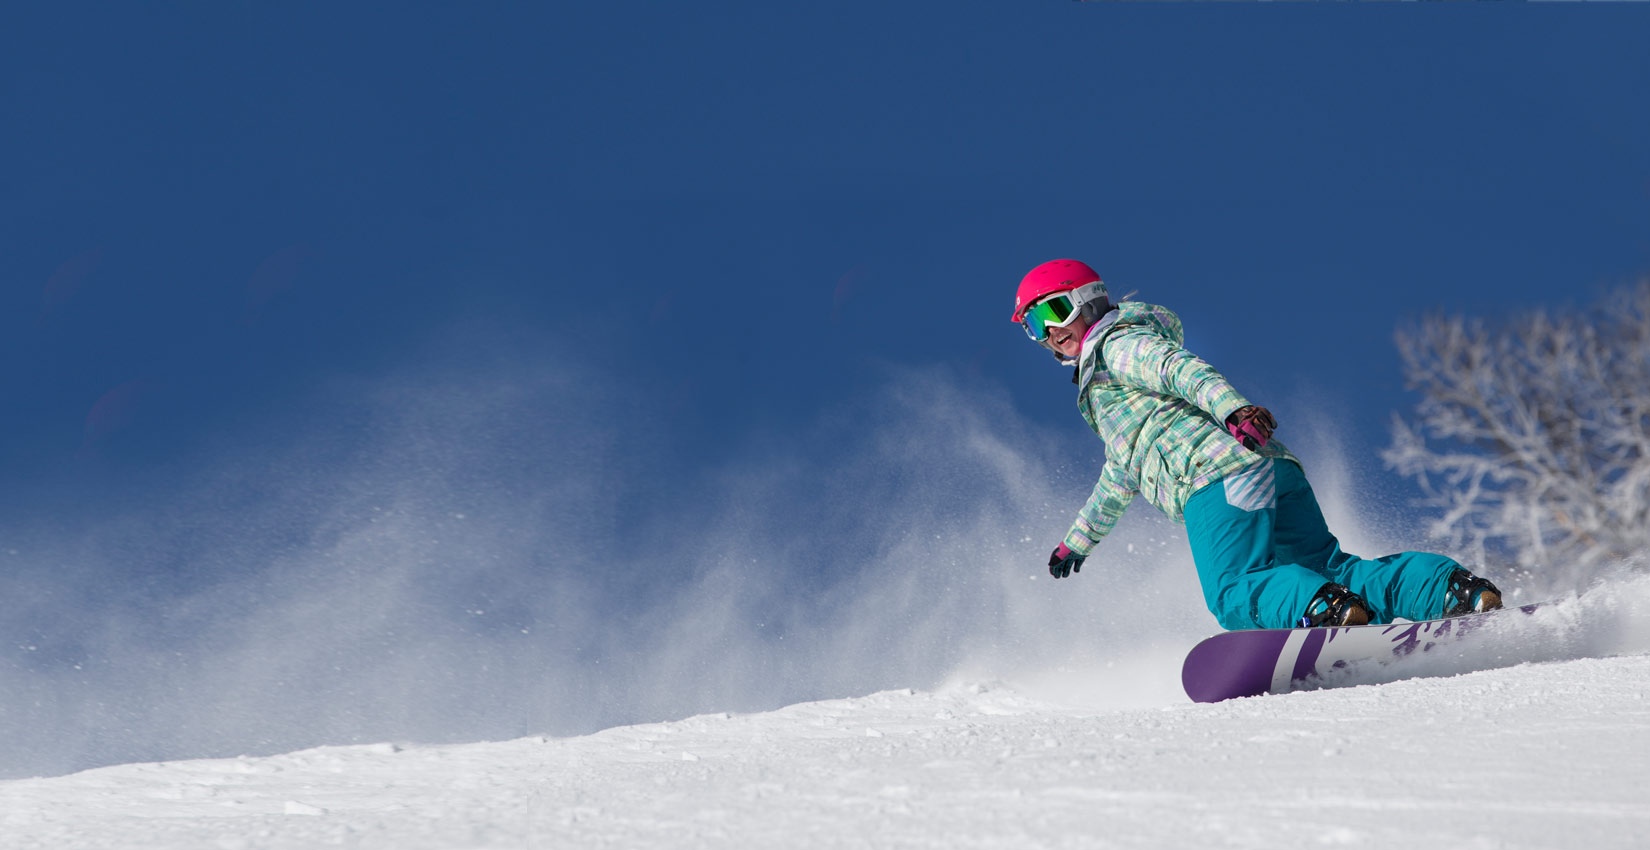 ski and snowboard this winter at wintergreen resort